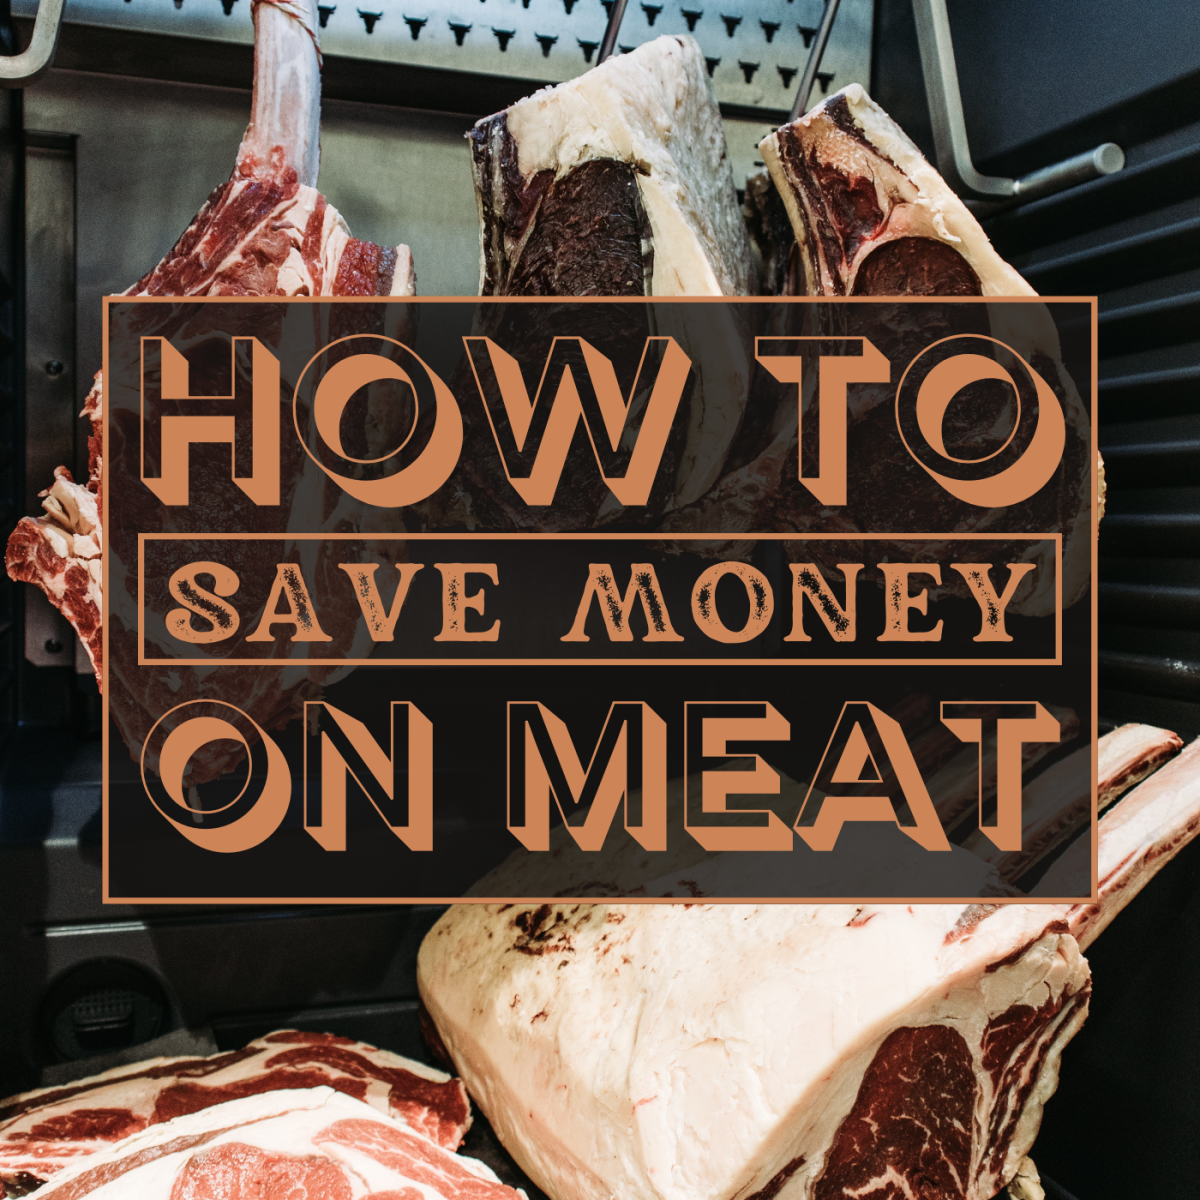 By buying cheaper cuts, saving leftovers, and making use of your freezer, you can get more out of your meat—and your budget.